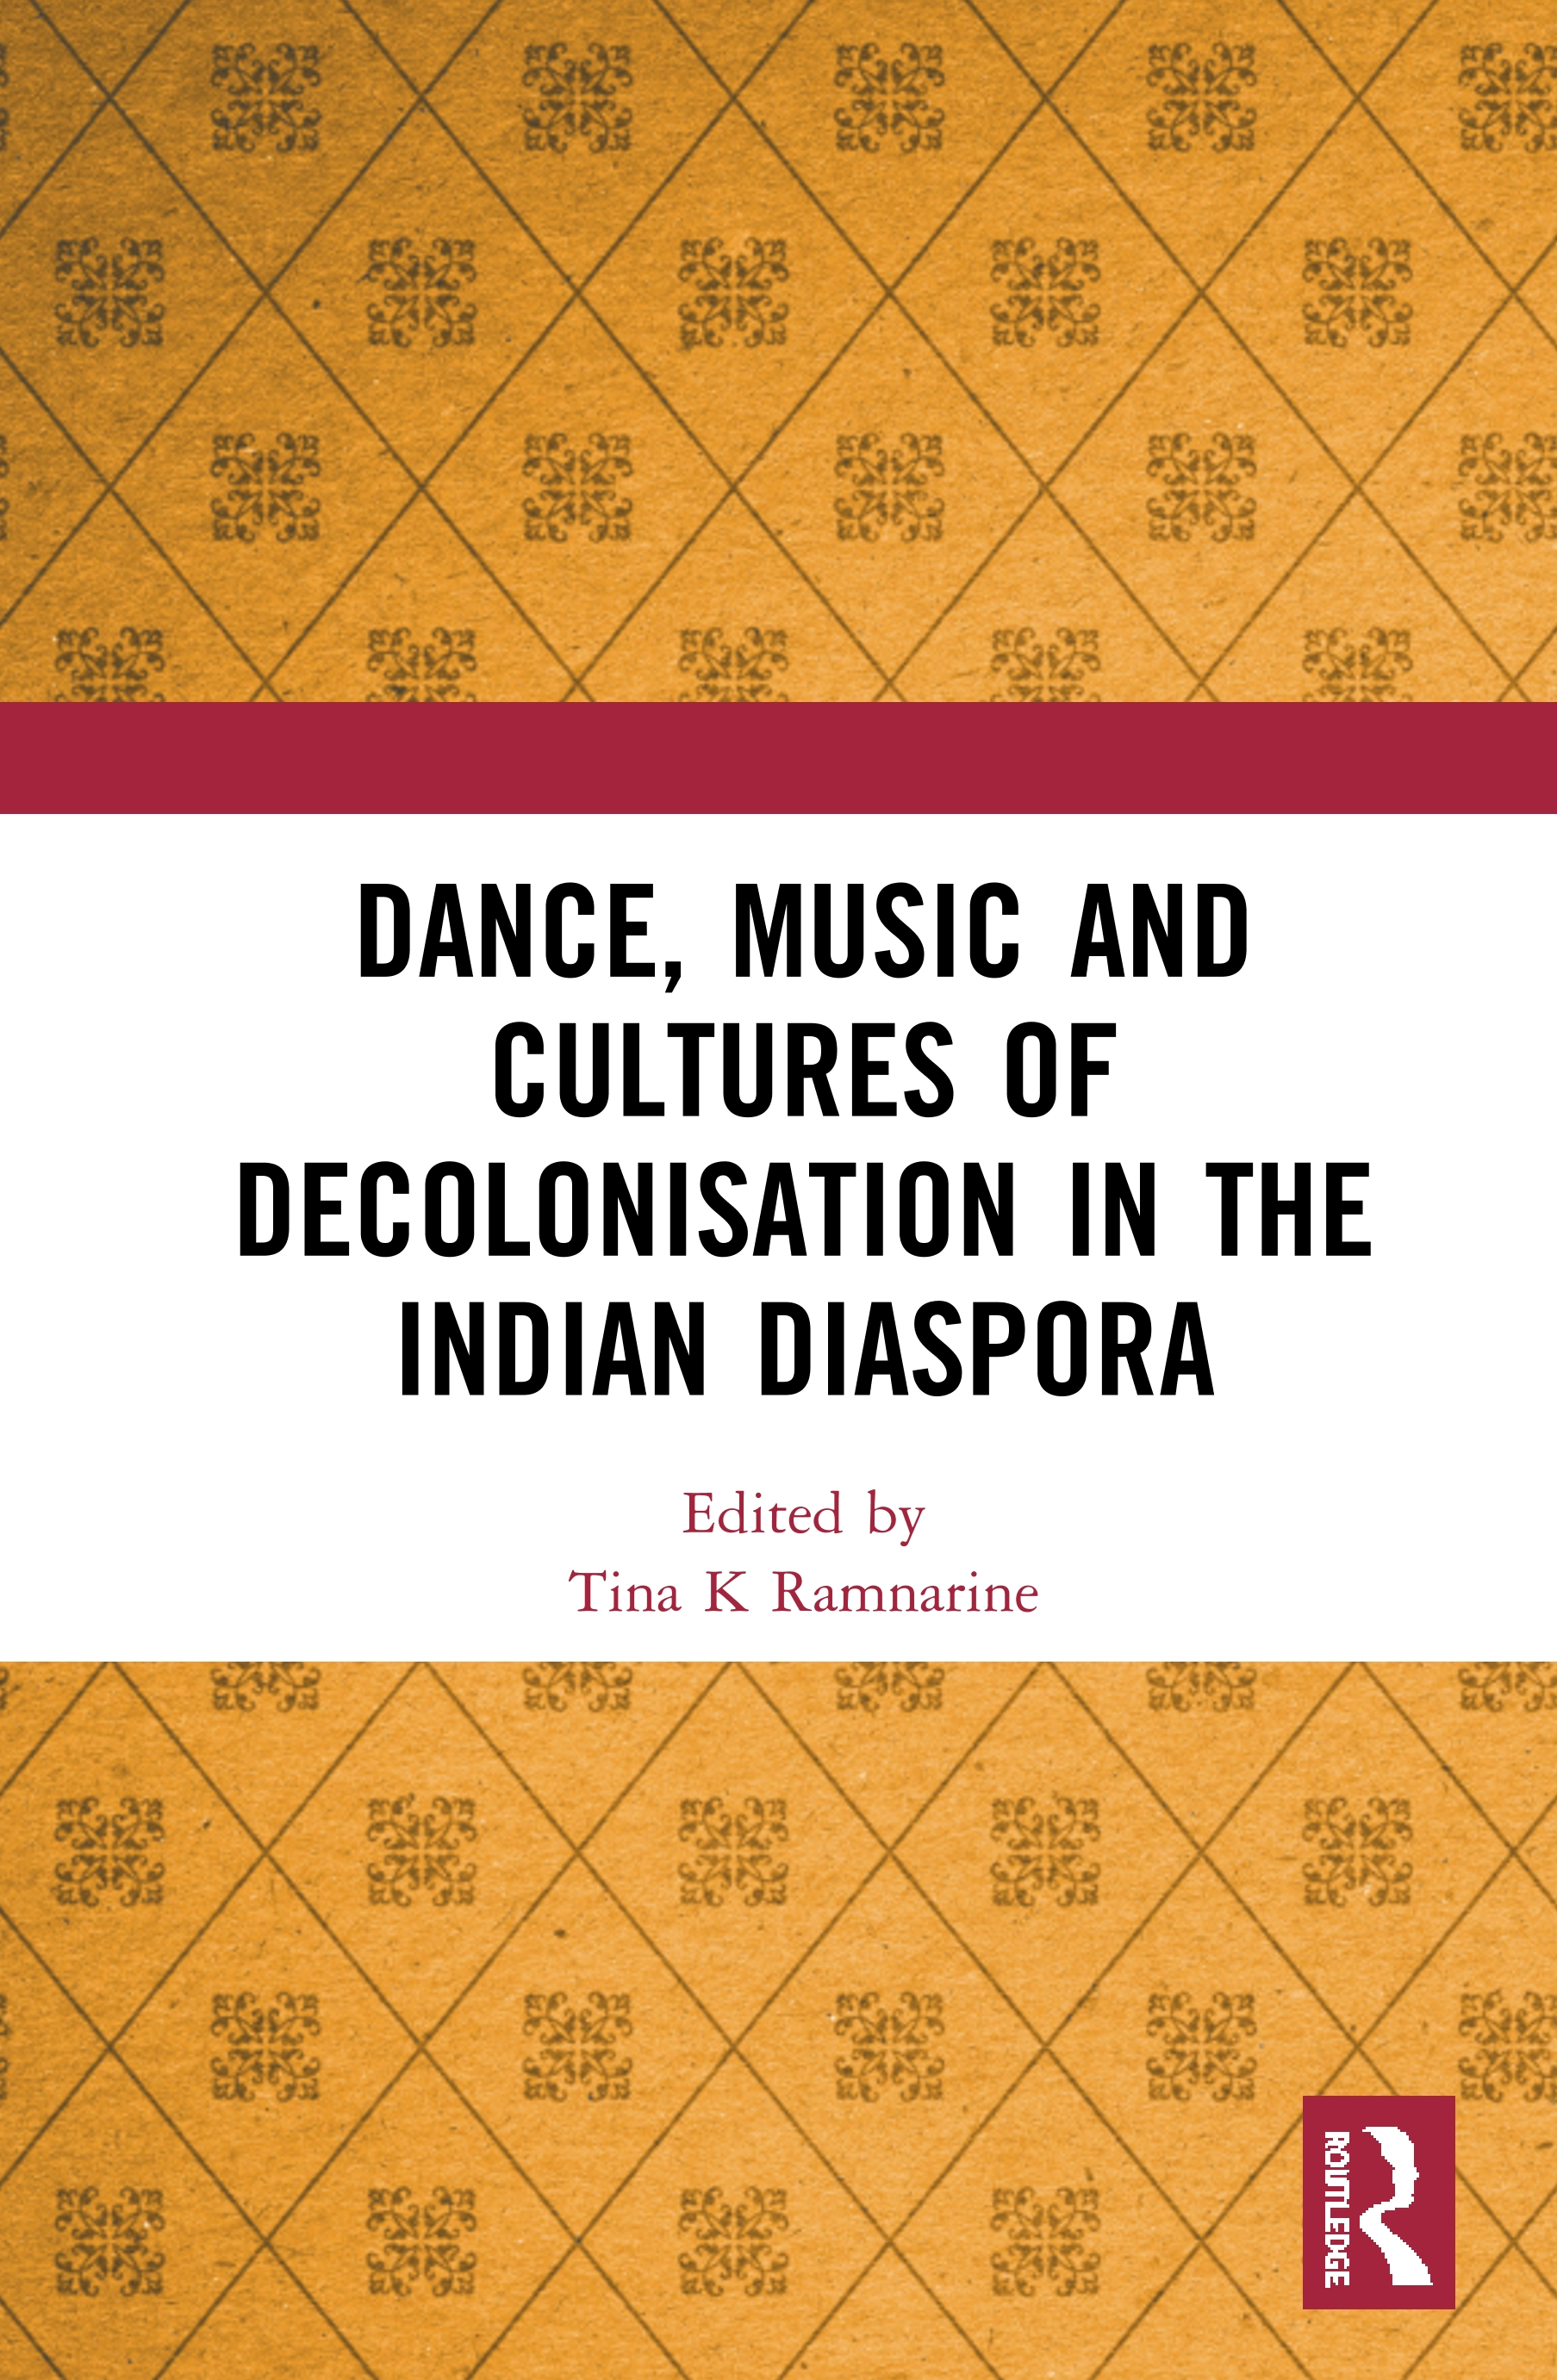 Dance, Music and Cultures of Decolonisation in the Indian Diaspora book cover